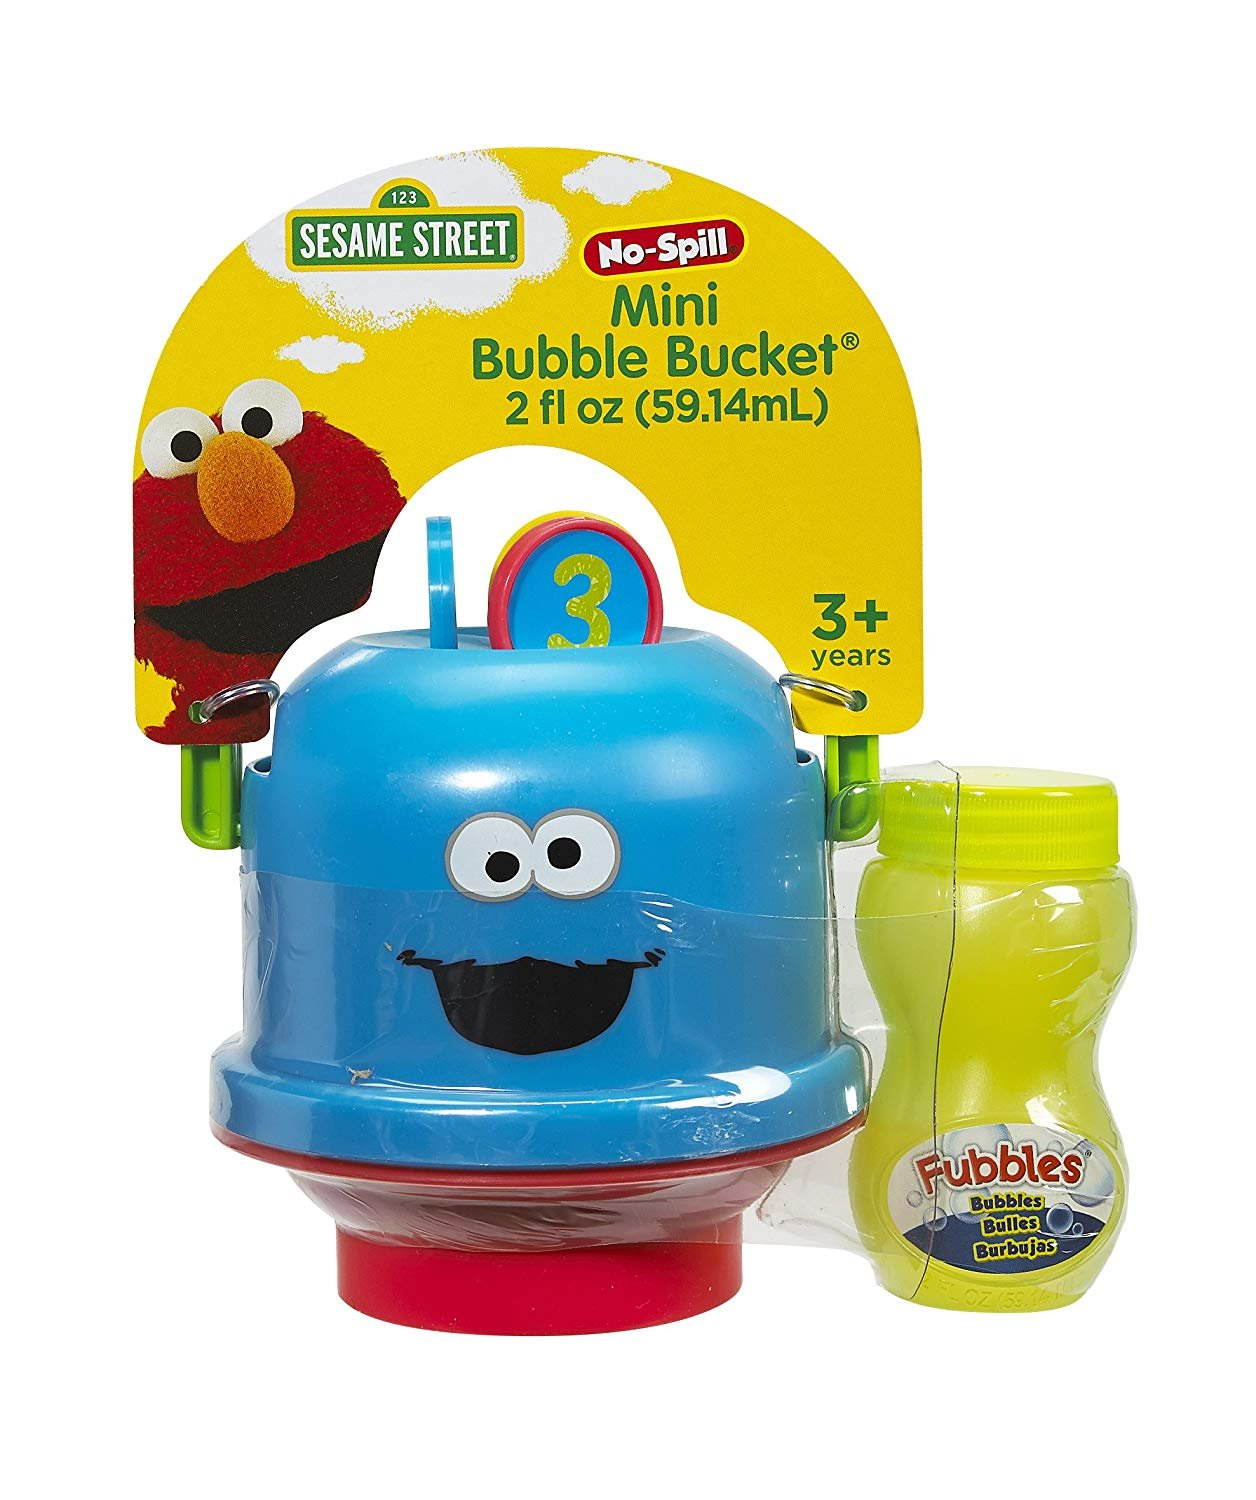 Sesame Street Mini Bubble Bucket